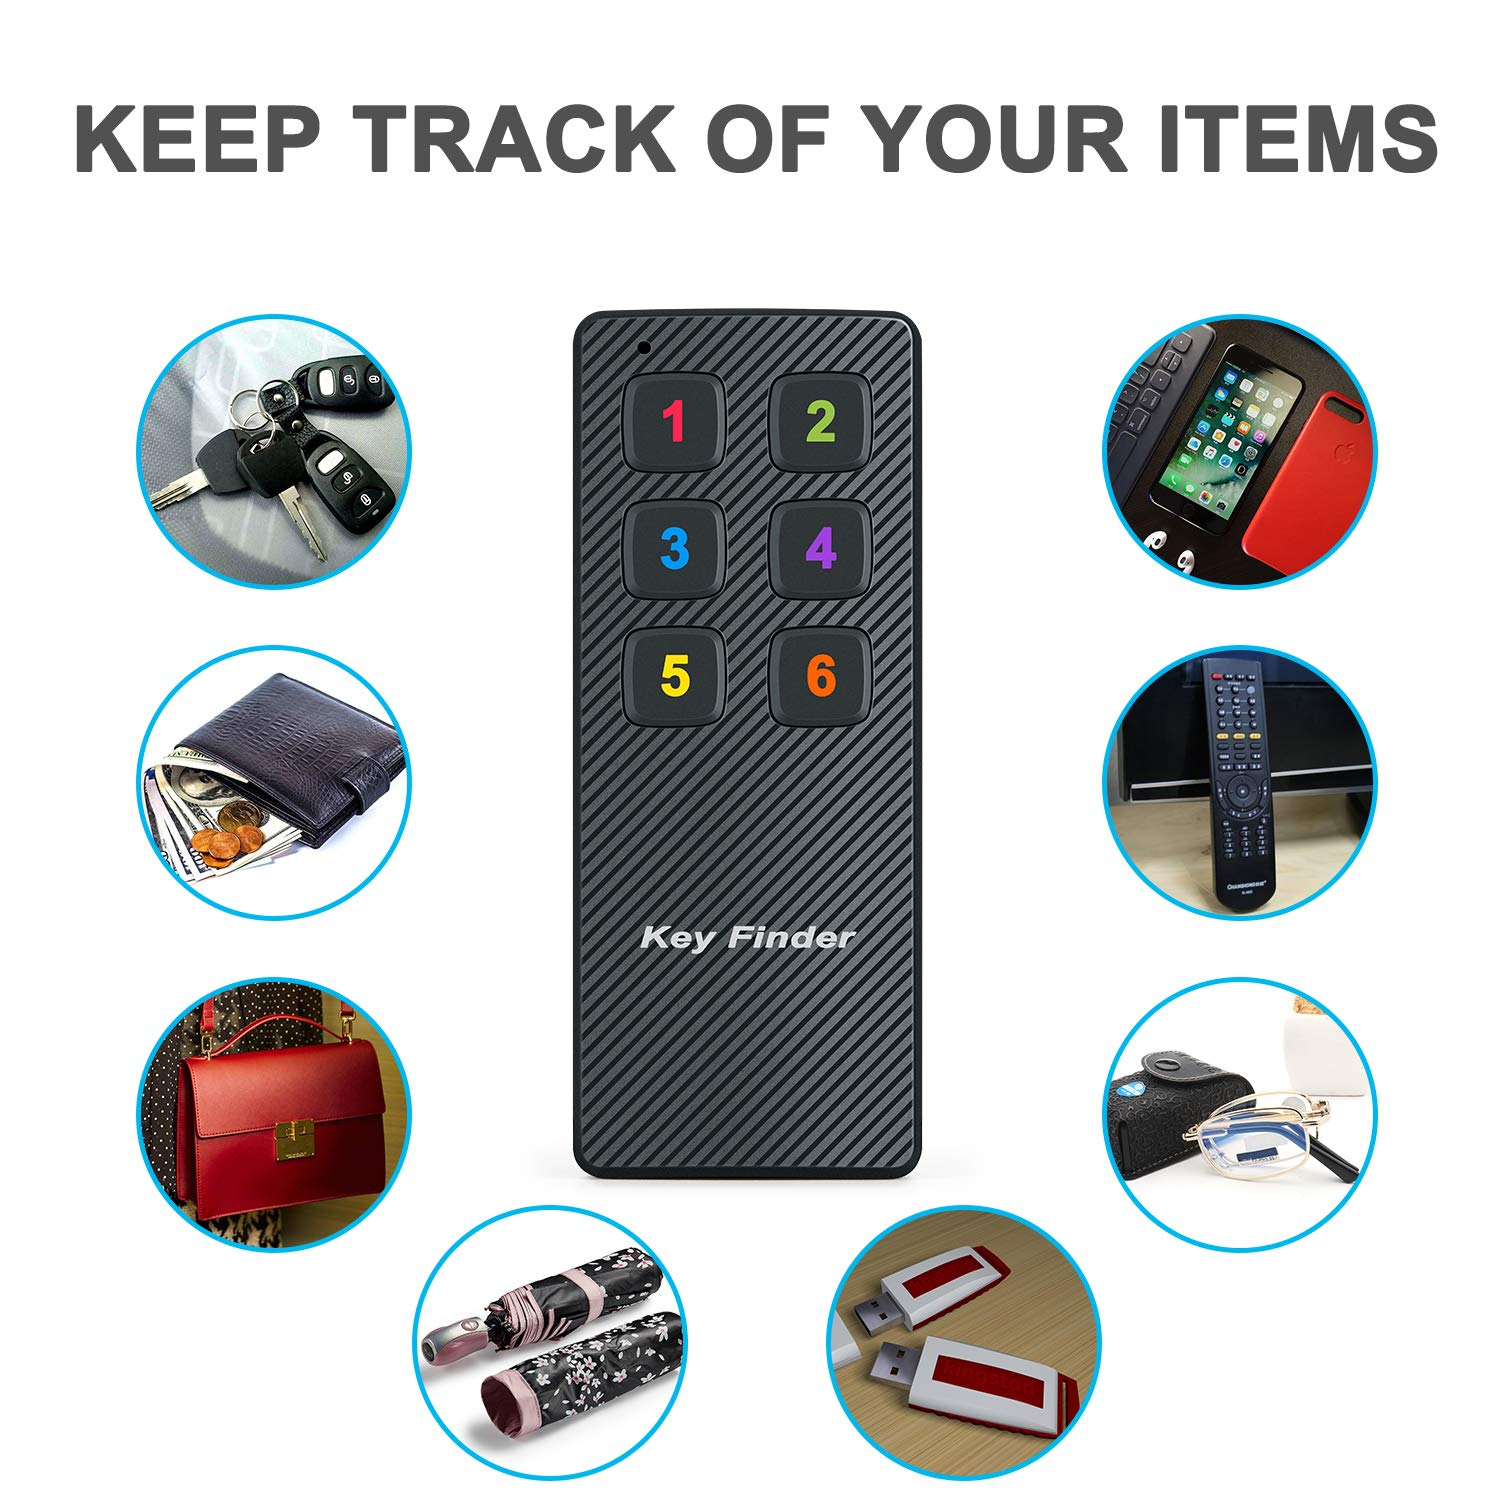 Key Finder Car Keys Tracker Ideal for Phone Locator Pet Tacker 1 Transmitter + 6 Receivers TBMax Wireless RF Item Locator Tracker with Remote Control Anti-Lost Wallet Purse Finder